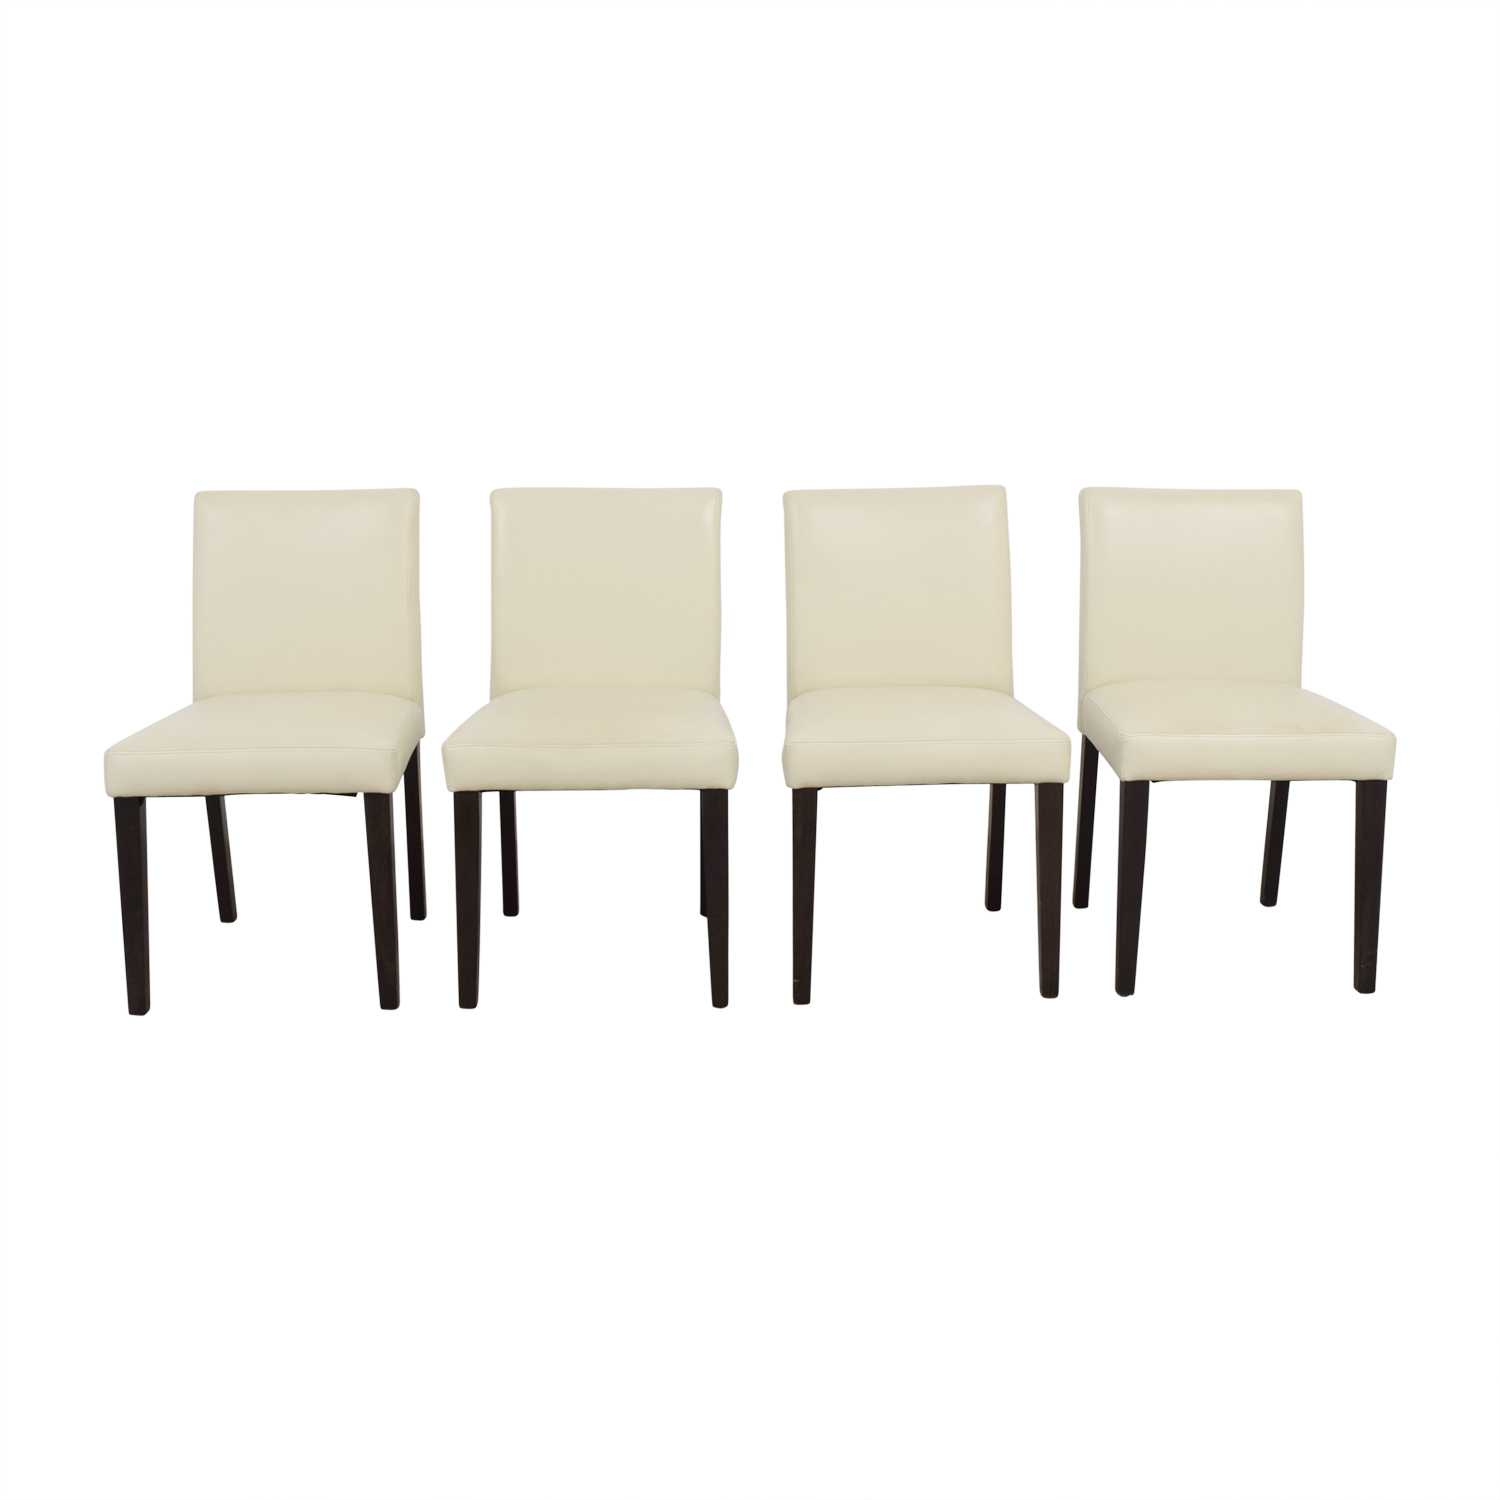 52% OFF   West Elm West Elm Grayson Parson Chairs / Chairs